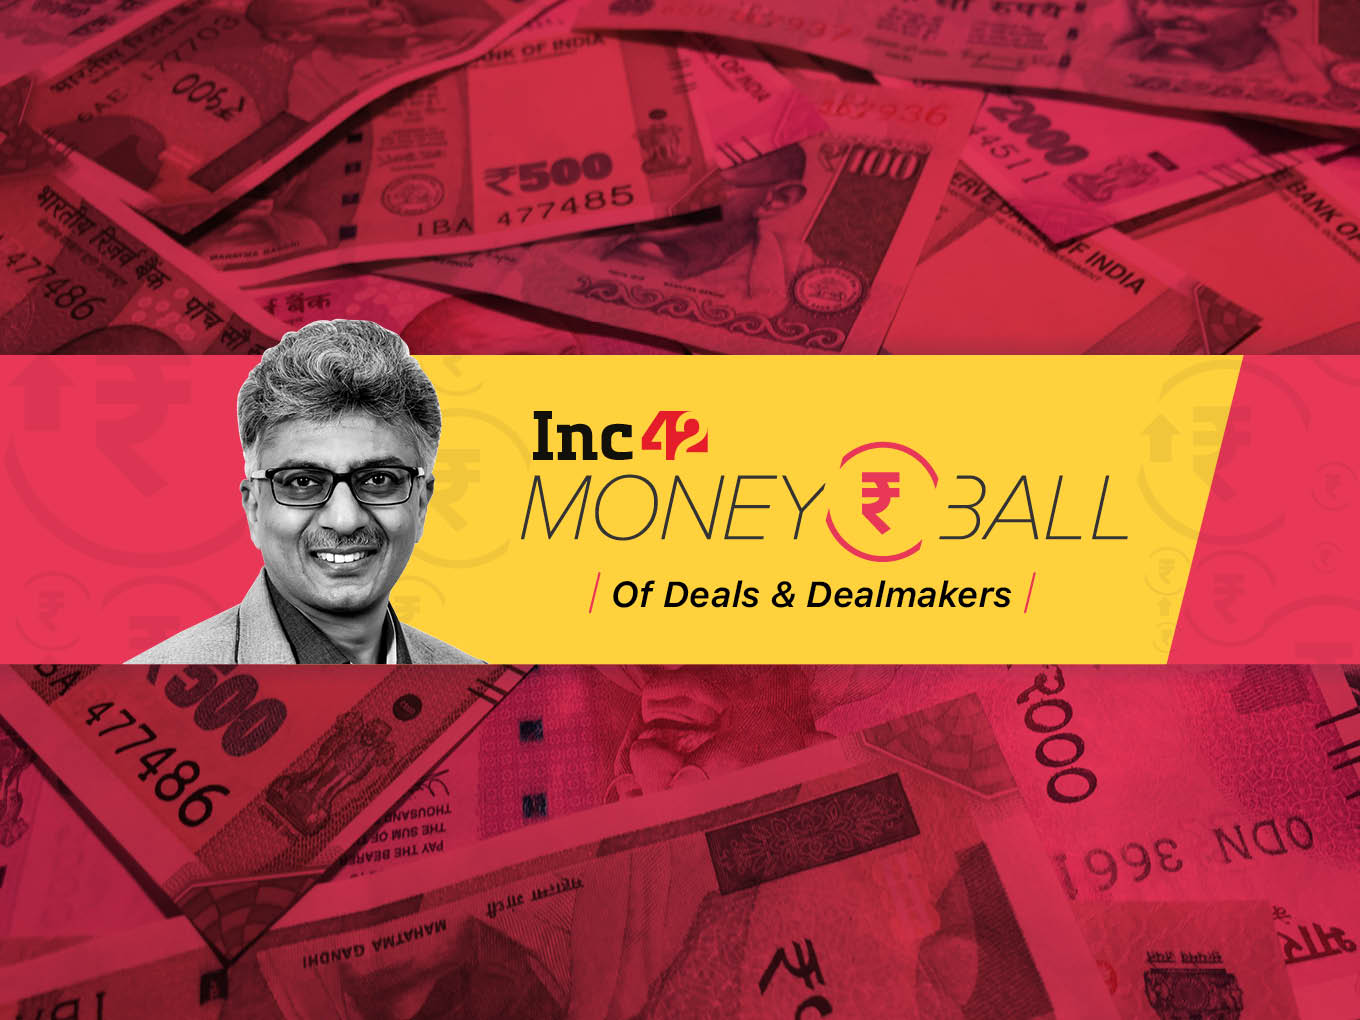 Moneyball Sunil Goyal YourNest Venture Capital